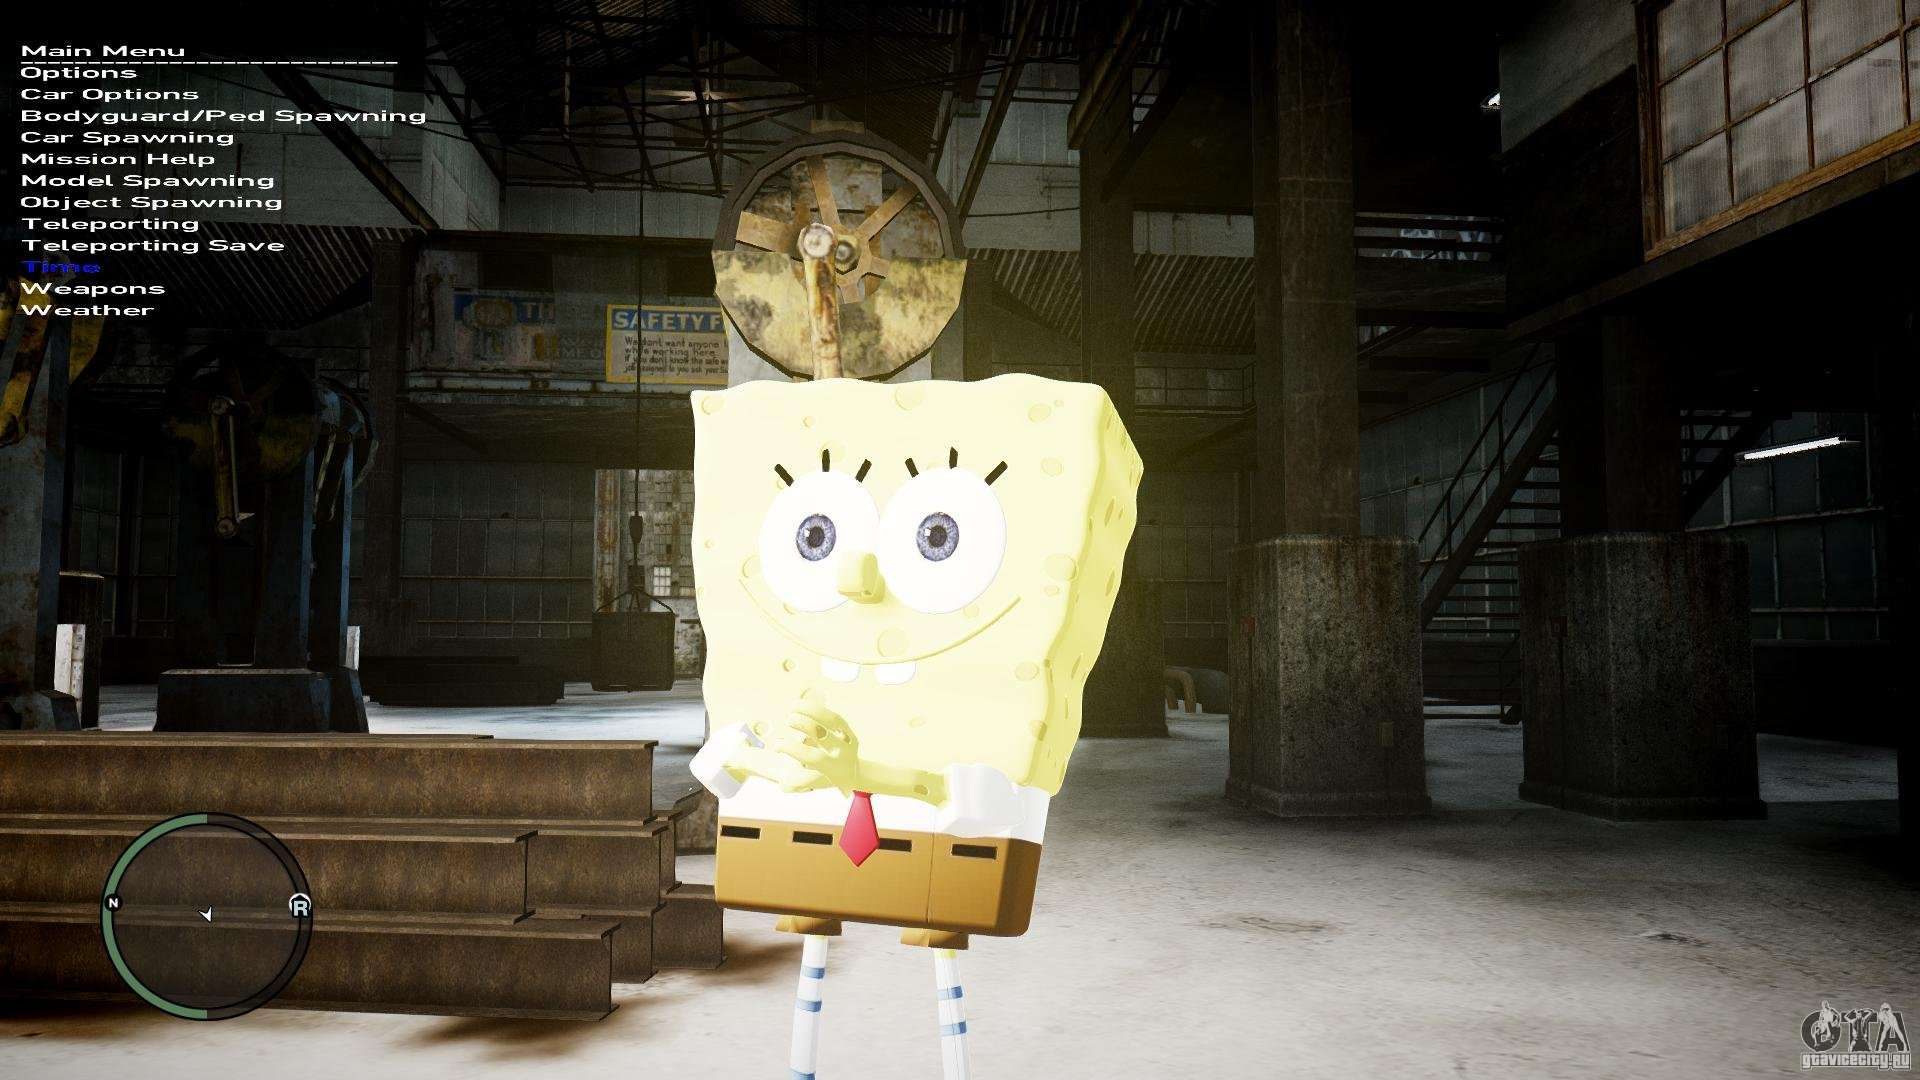 Spongebob for GTA 4